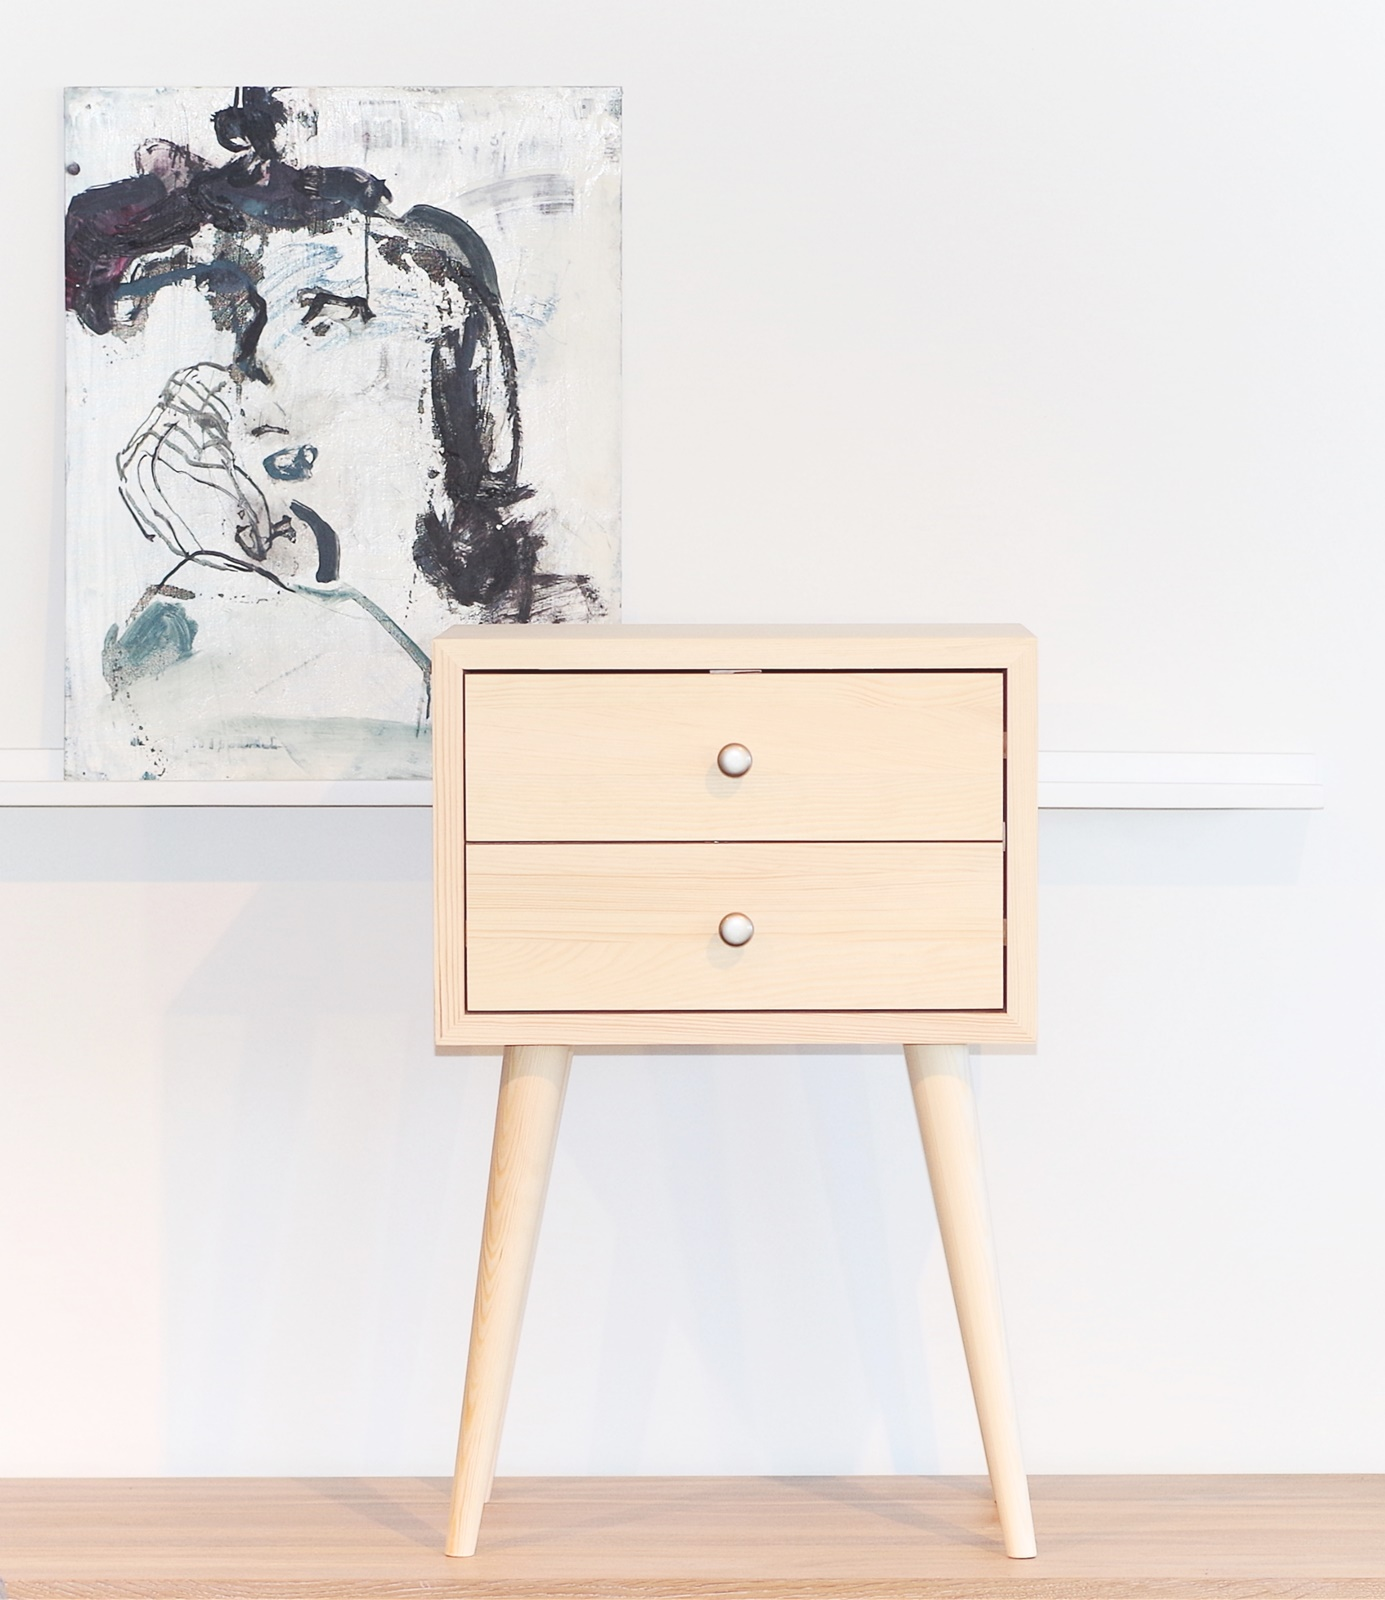 New bedside table with drawers, ald-0005n isvxycq